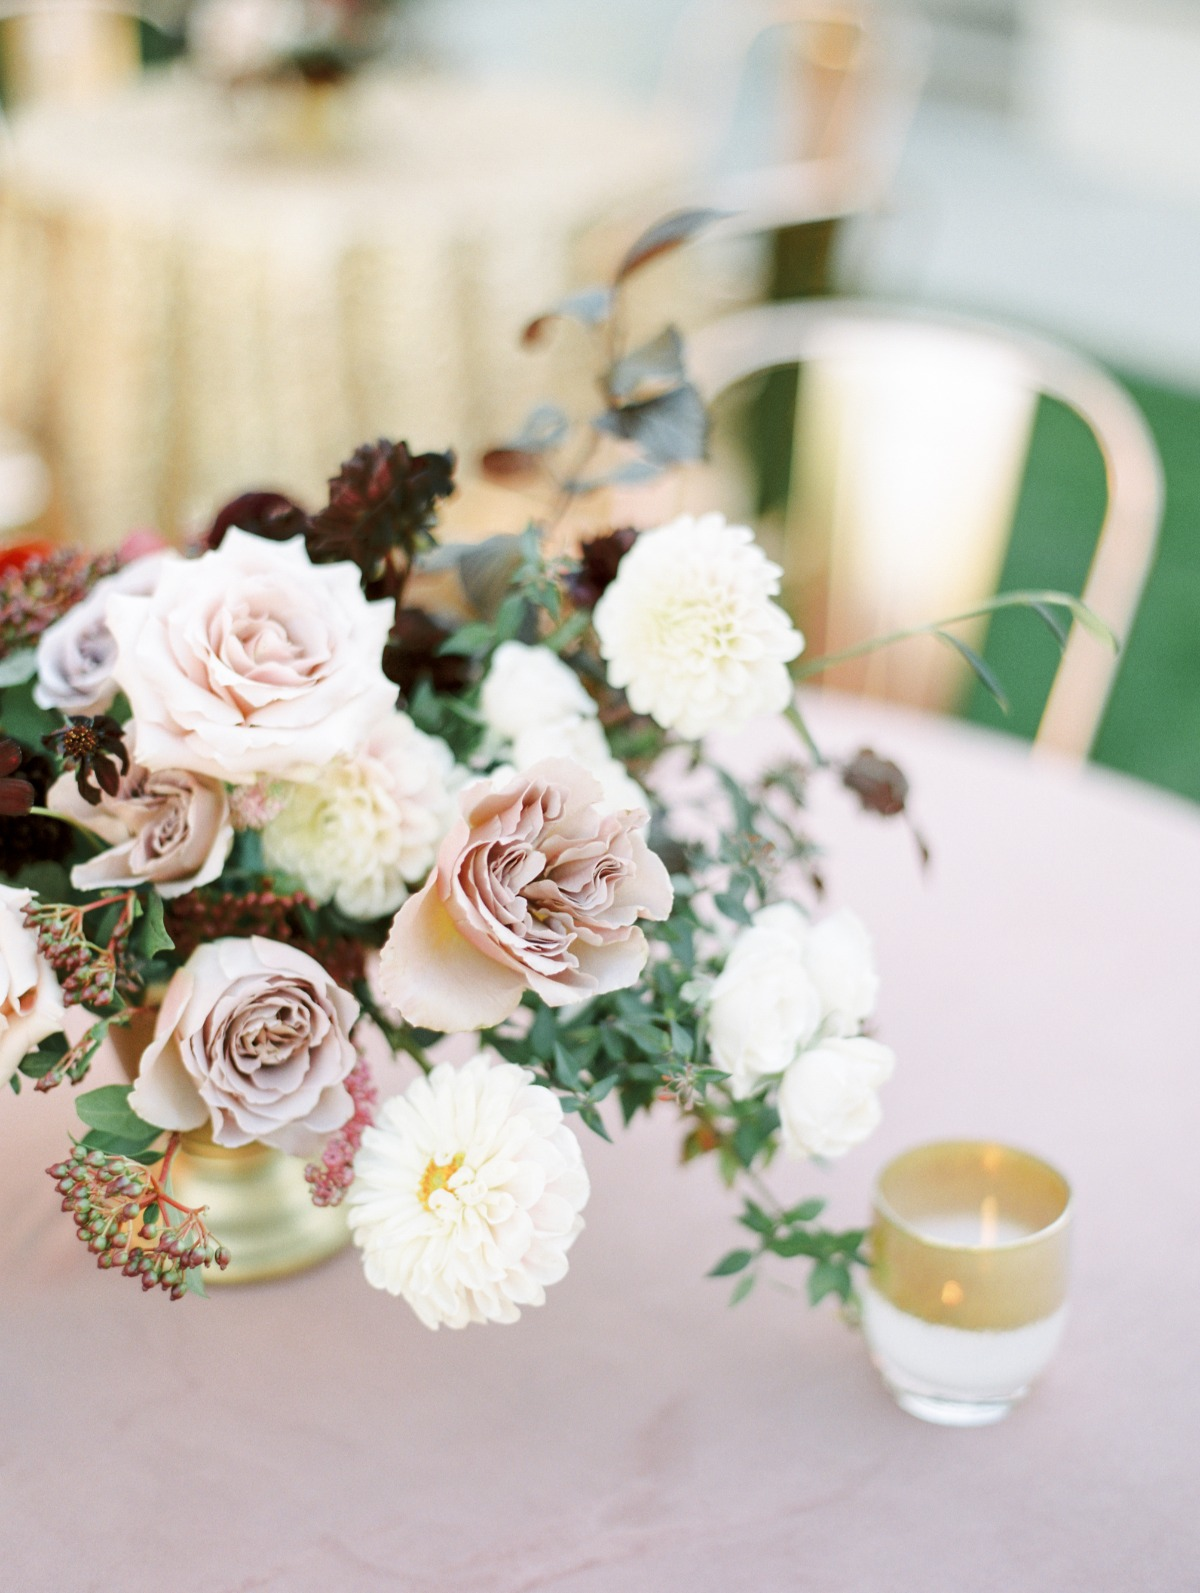 Let's Just Say No Detail is Overlooked when a Wedding Planner Gets Married